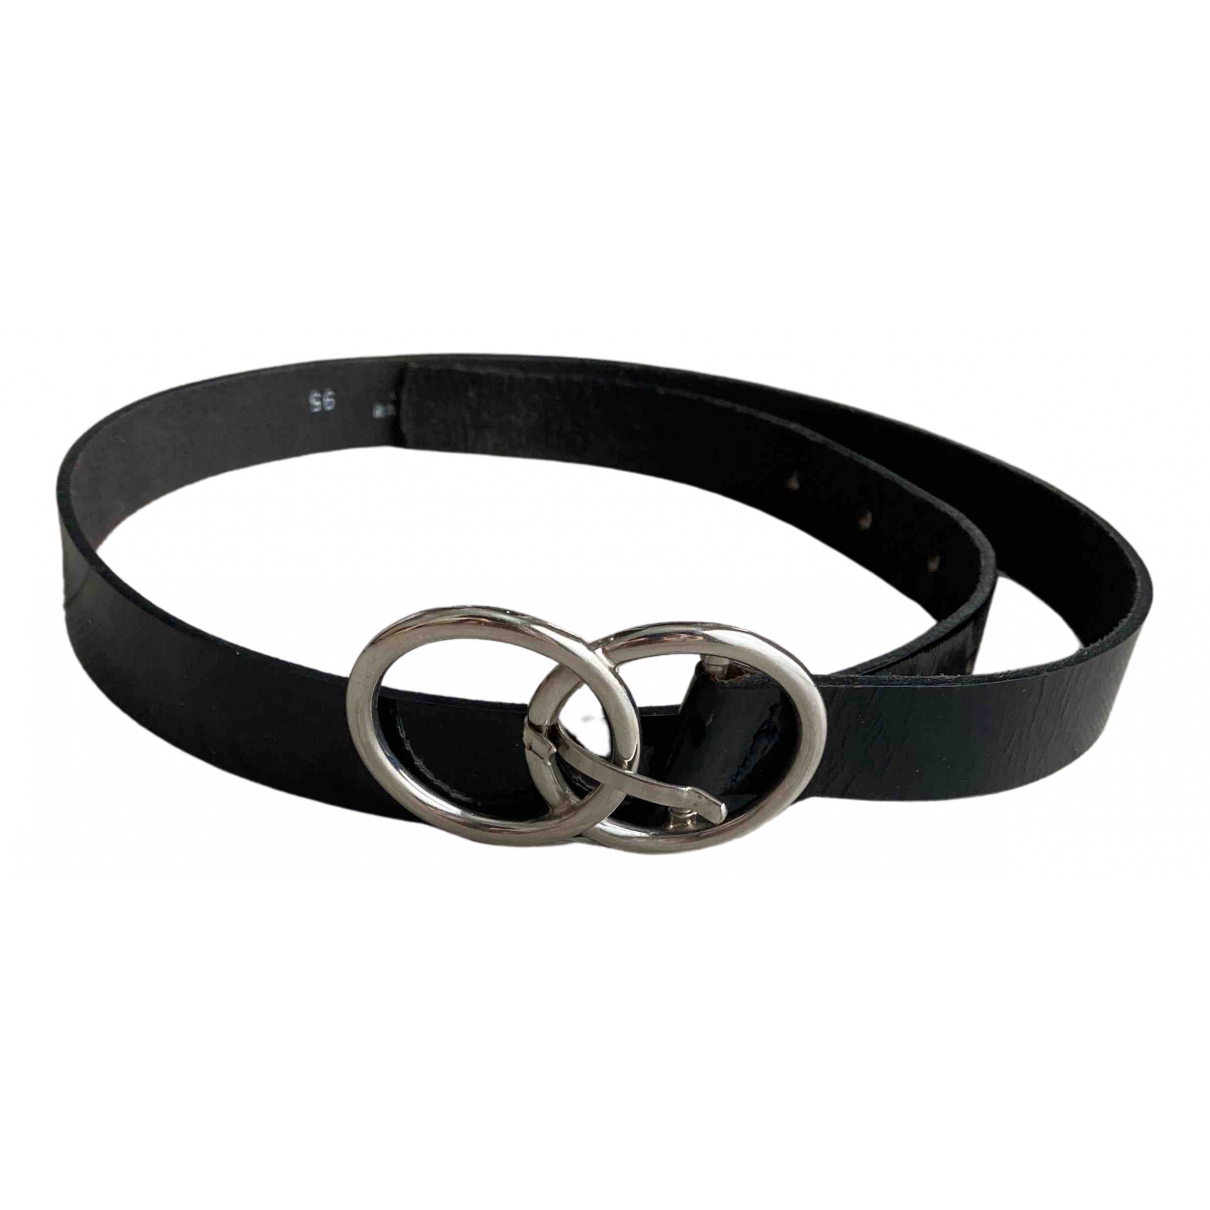 Dolce & Gabbana N Black Patent leather belt for Women 95 cm